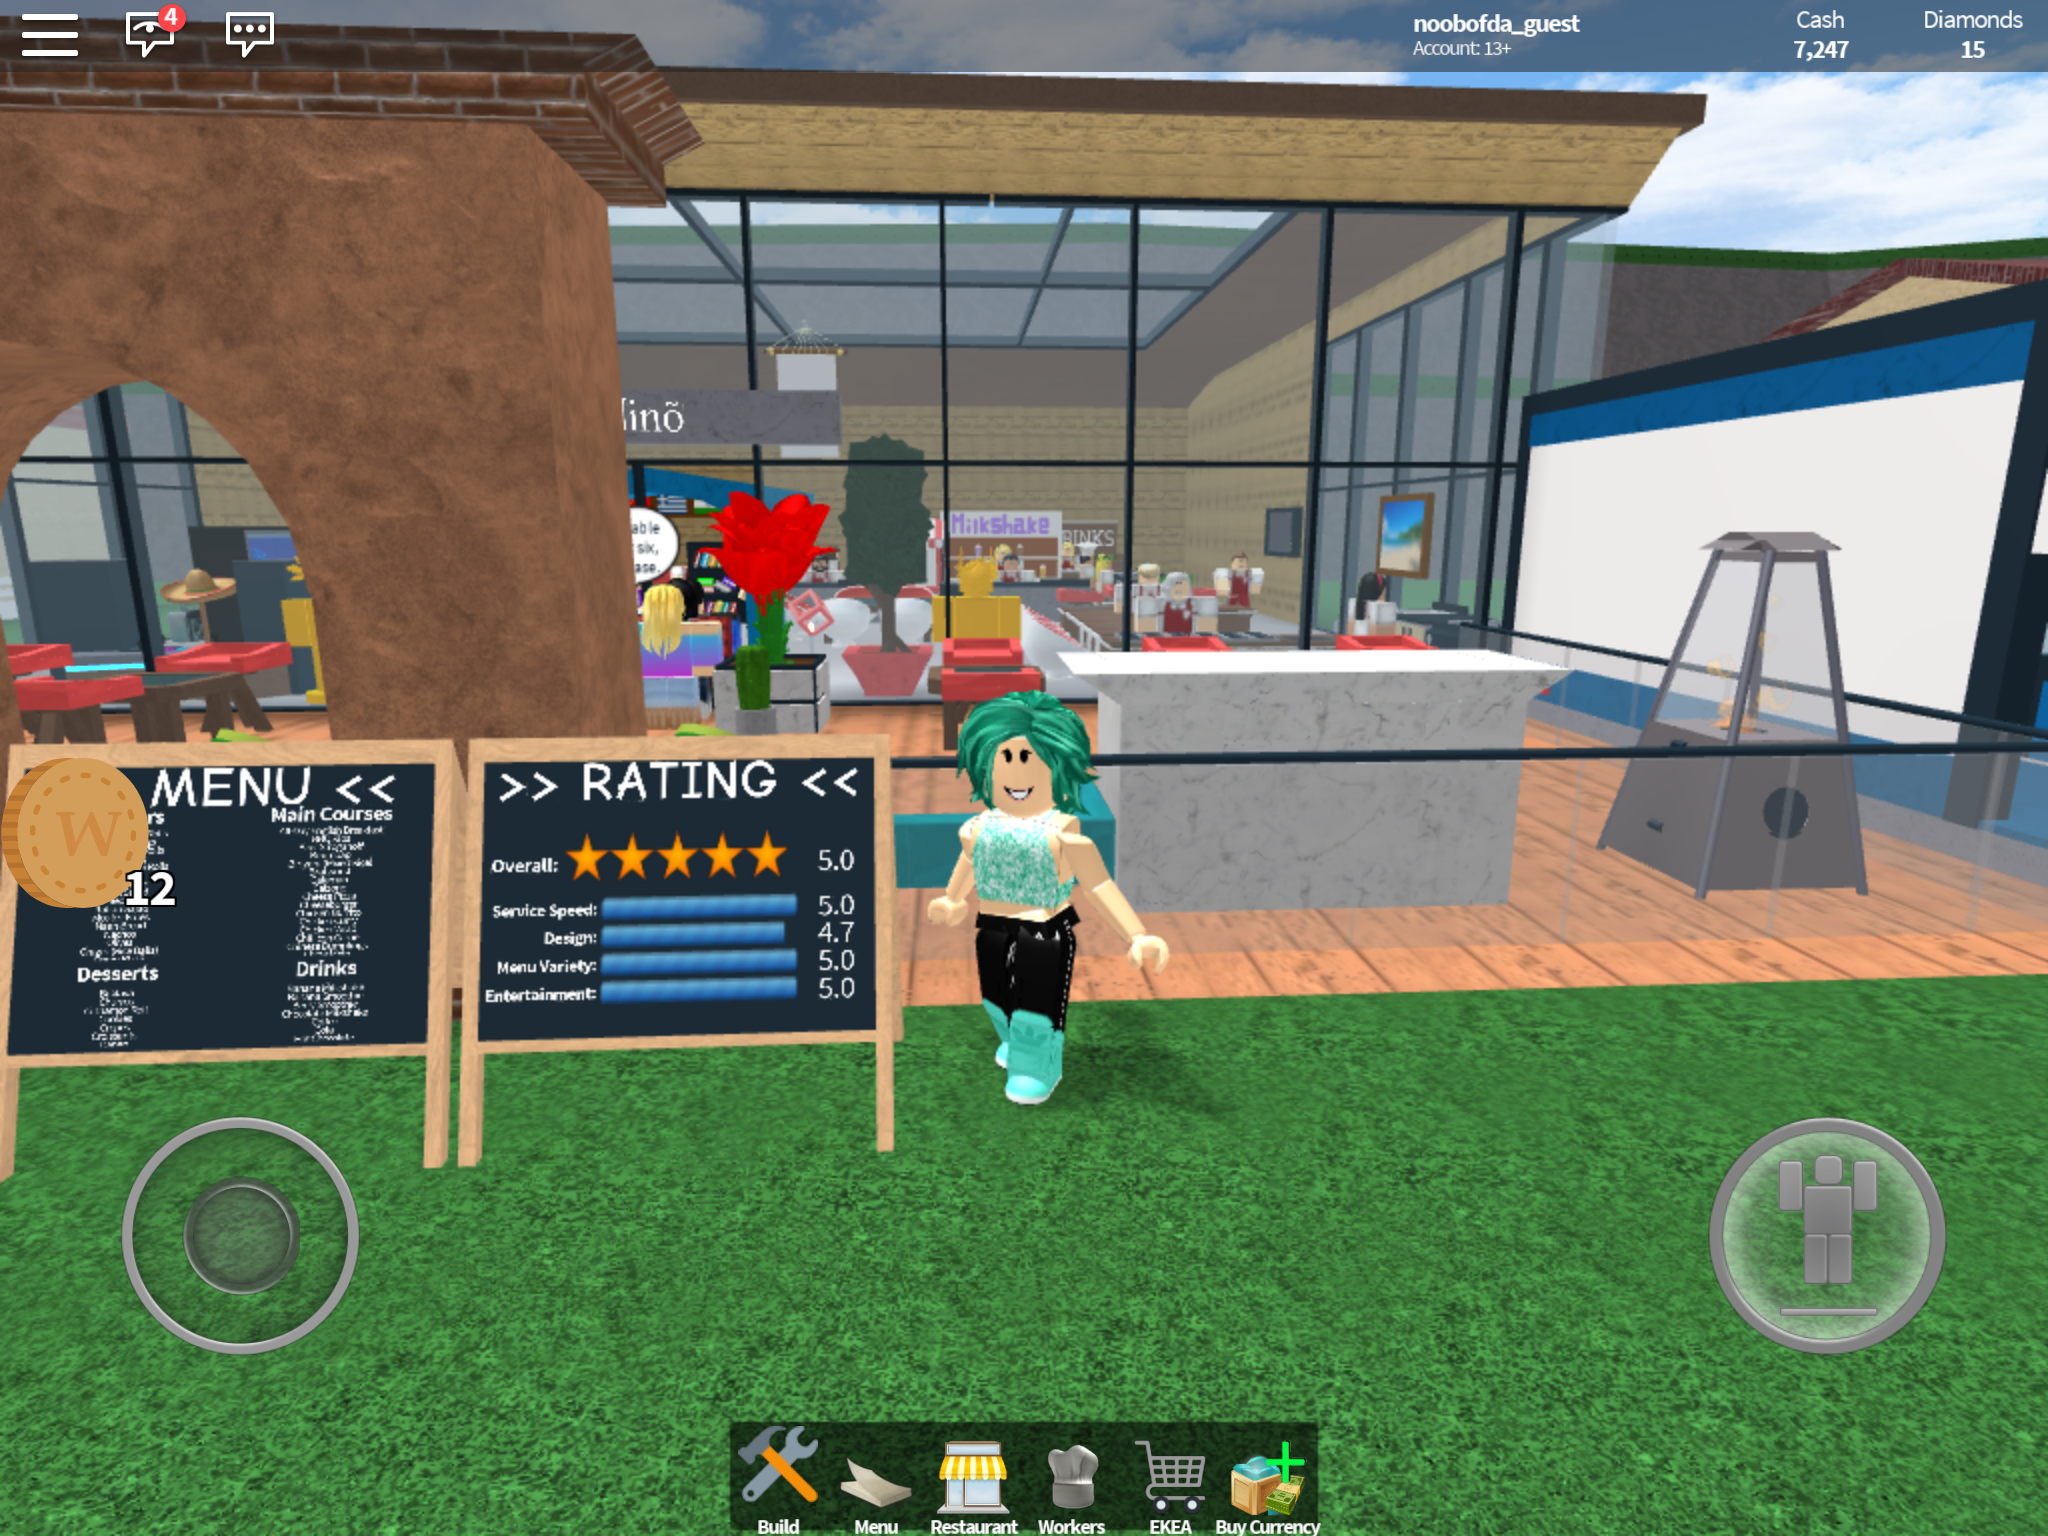 Me in Restaurant Tycoon 5 stars 💯 | Roblox | Basketball